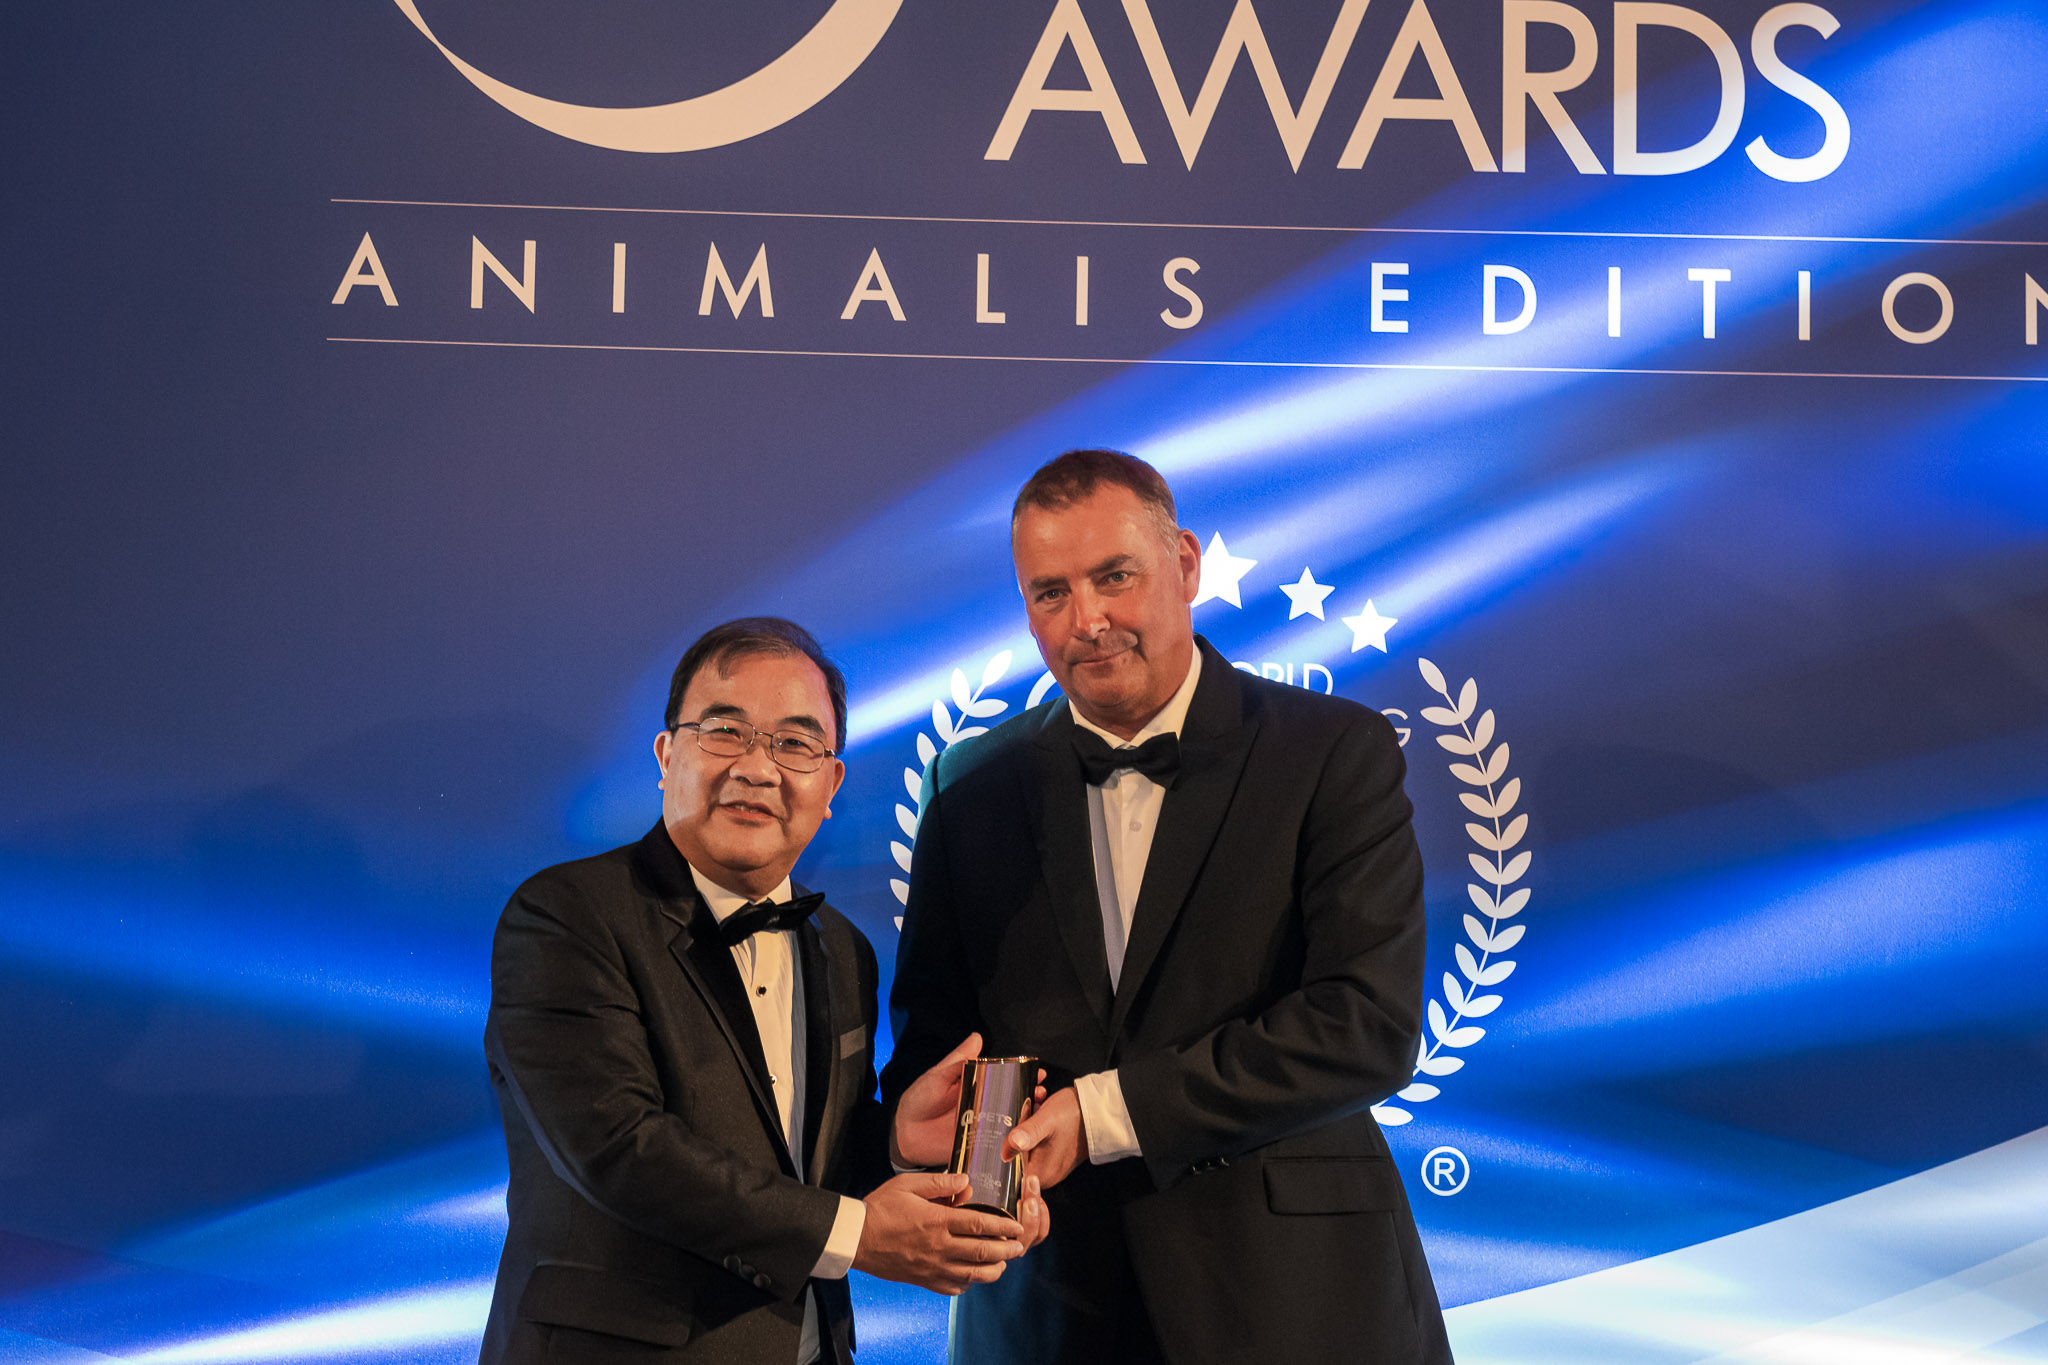 20190703_220200_world_branding_awards_animalis_7779